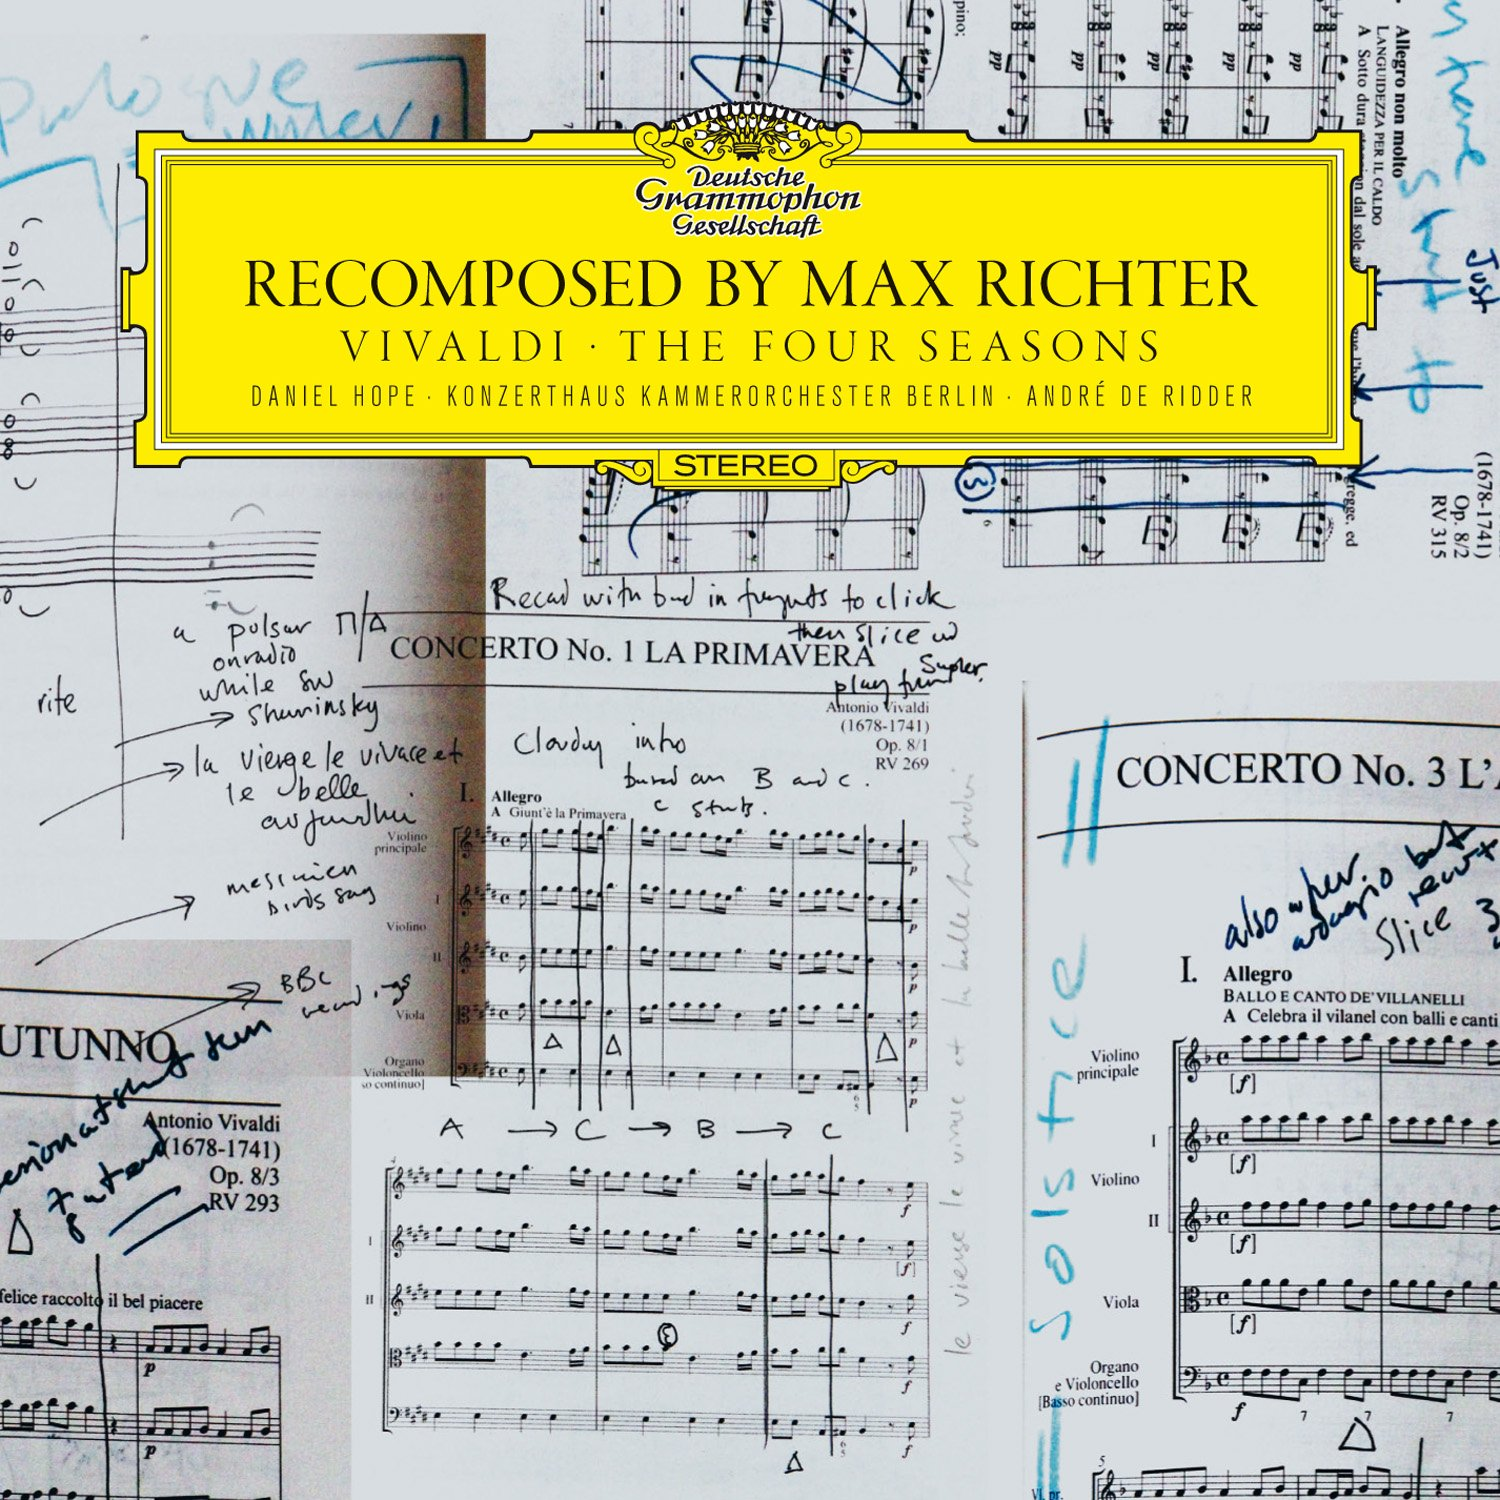 recomposed by max richter vivaldi the four seasons